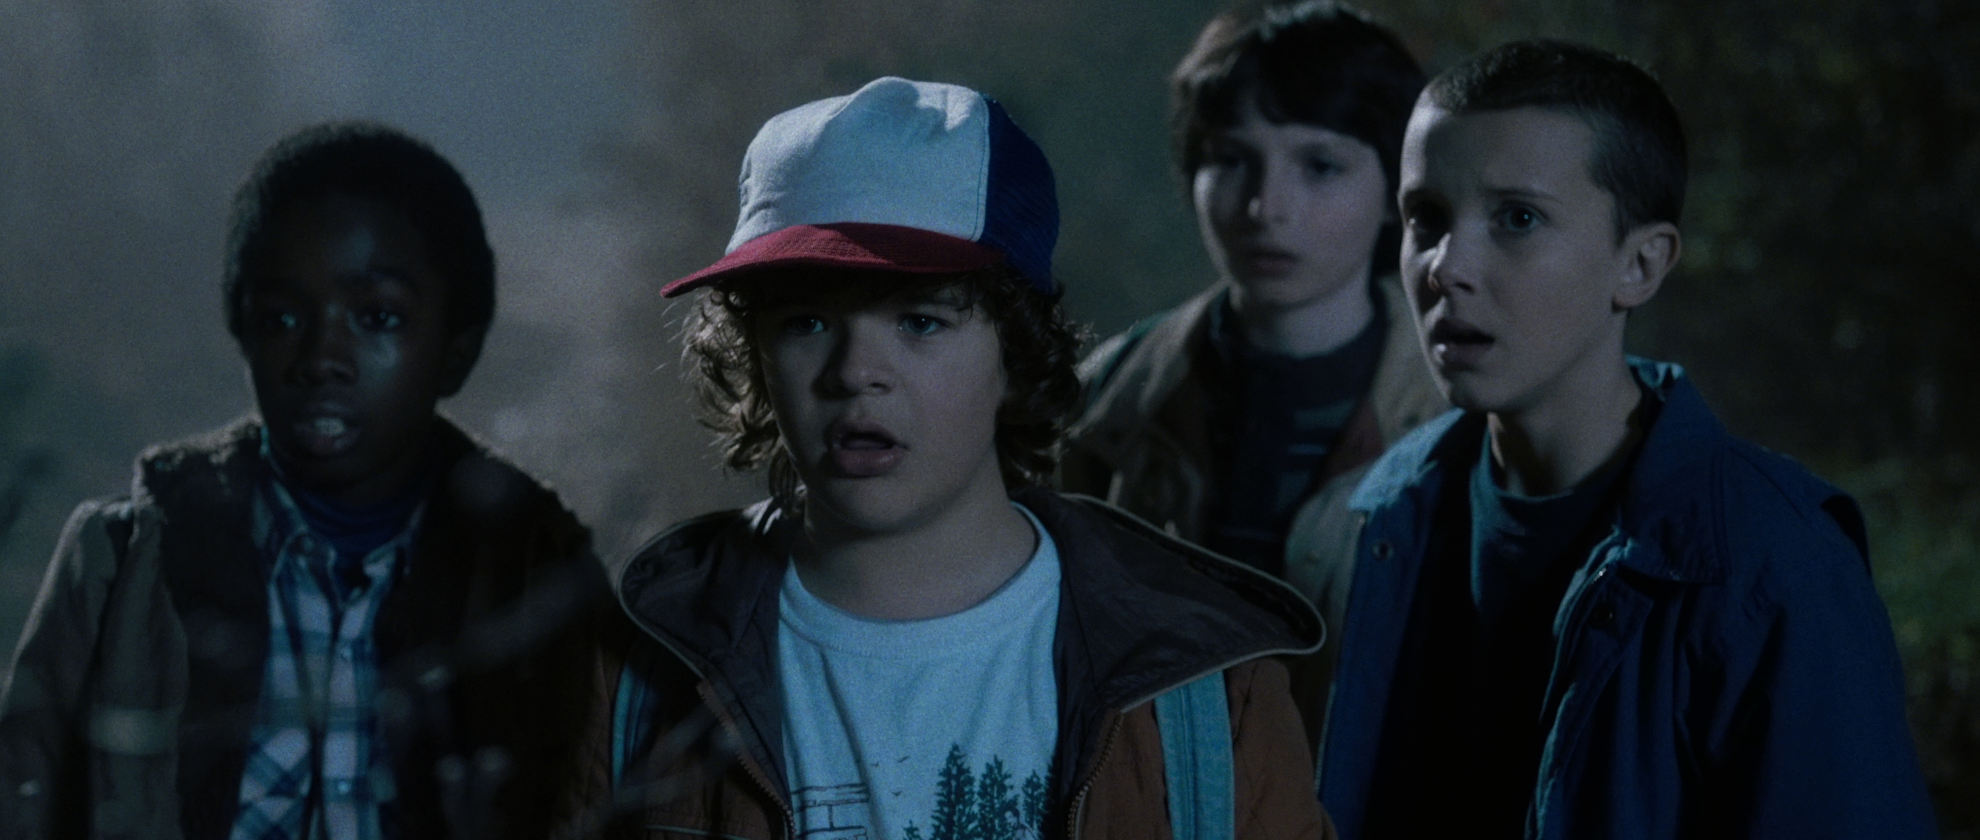 Style Inspo: Dress Like You're From Stranger Things